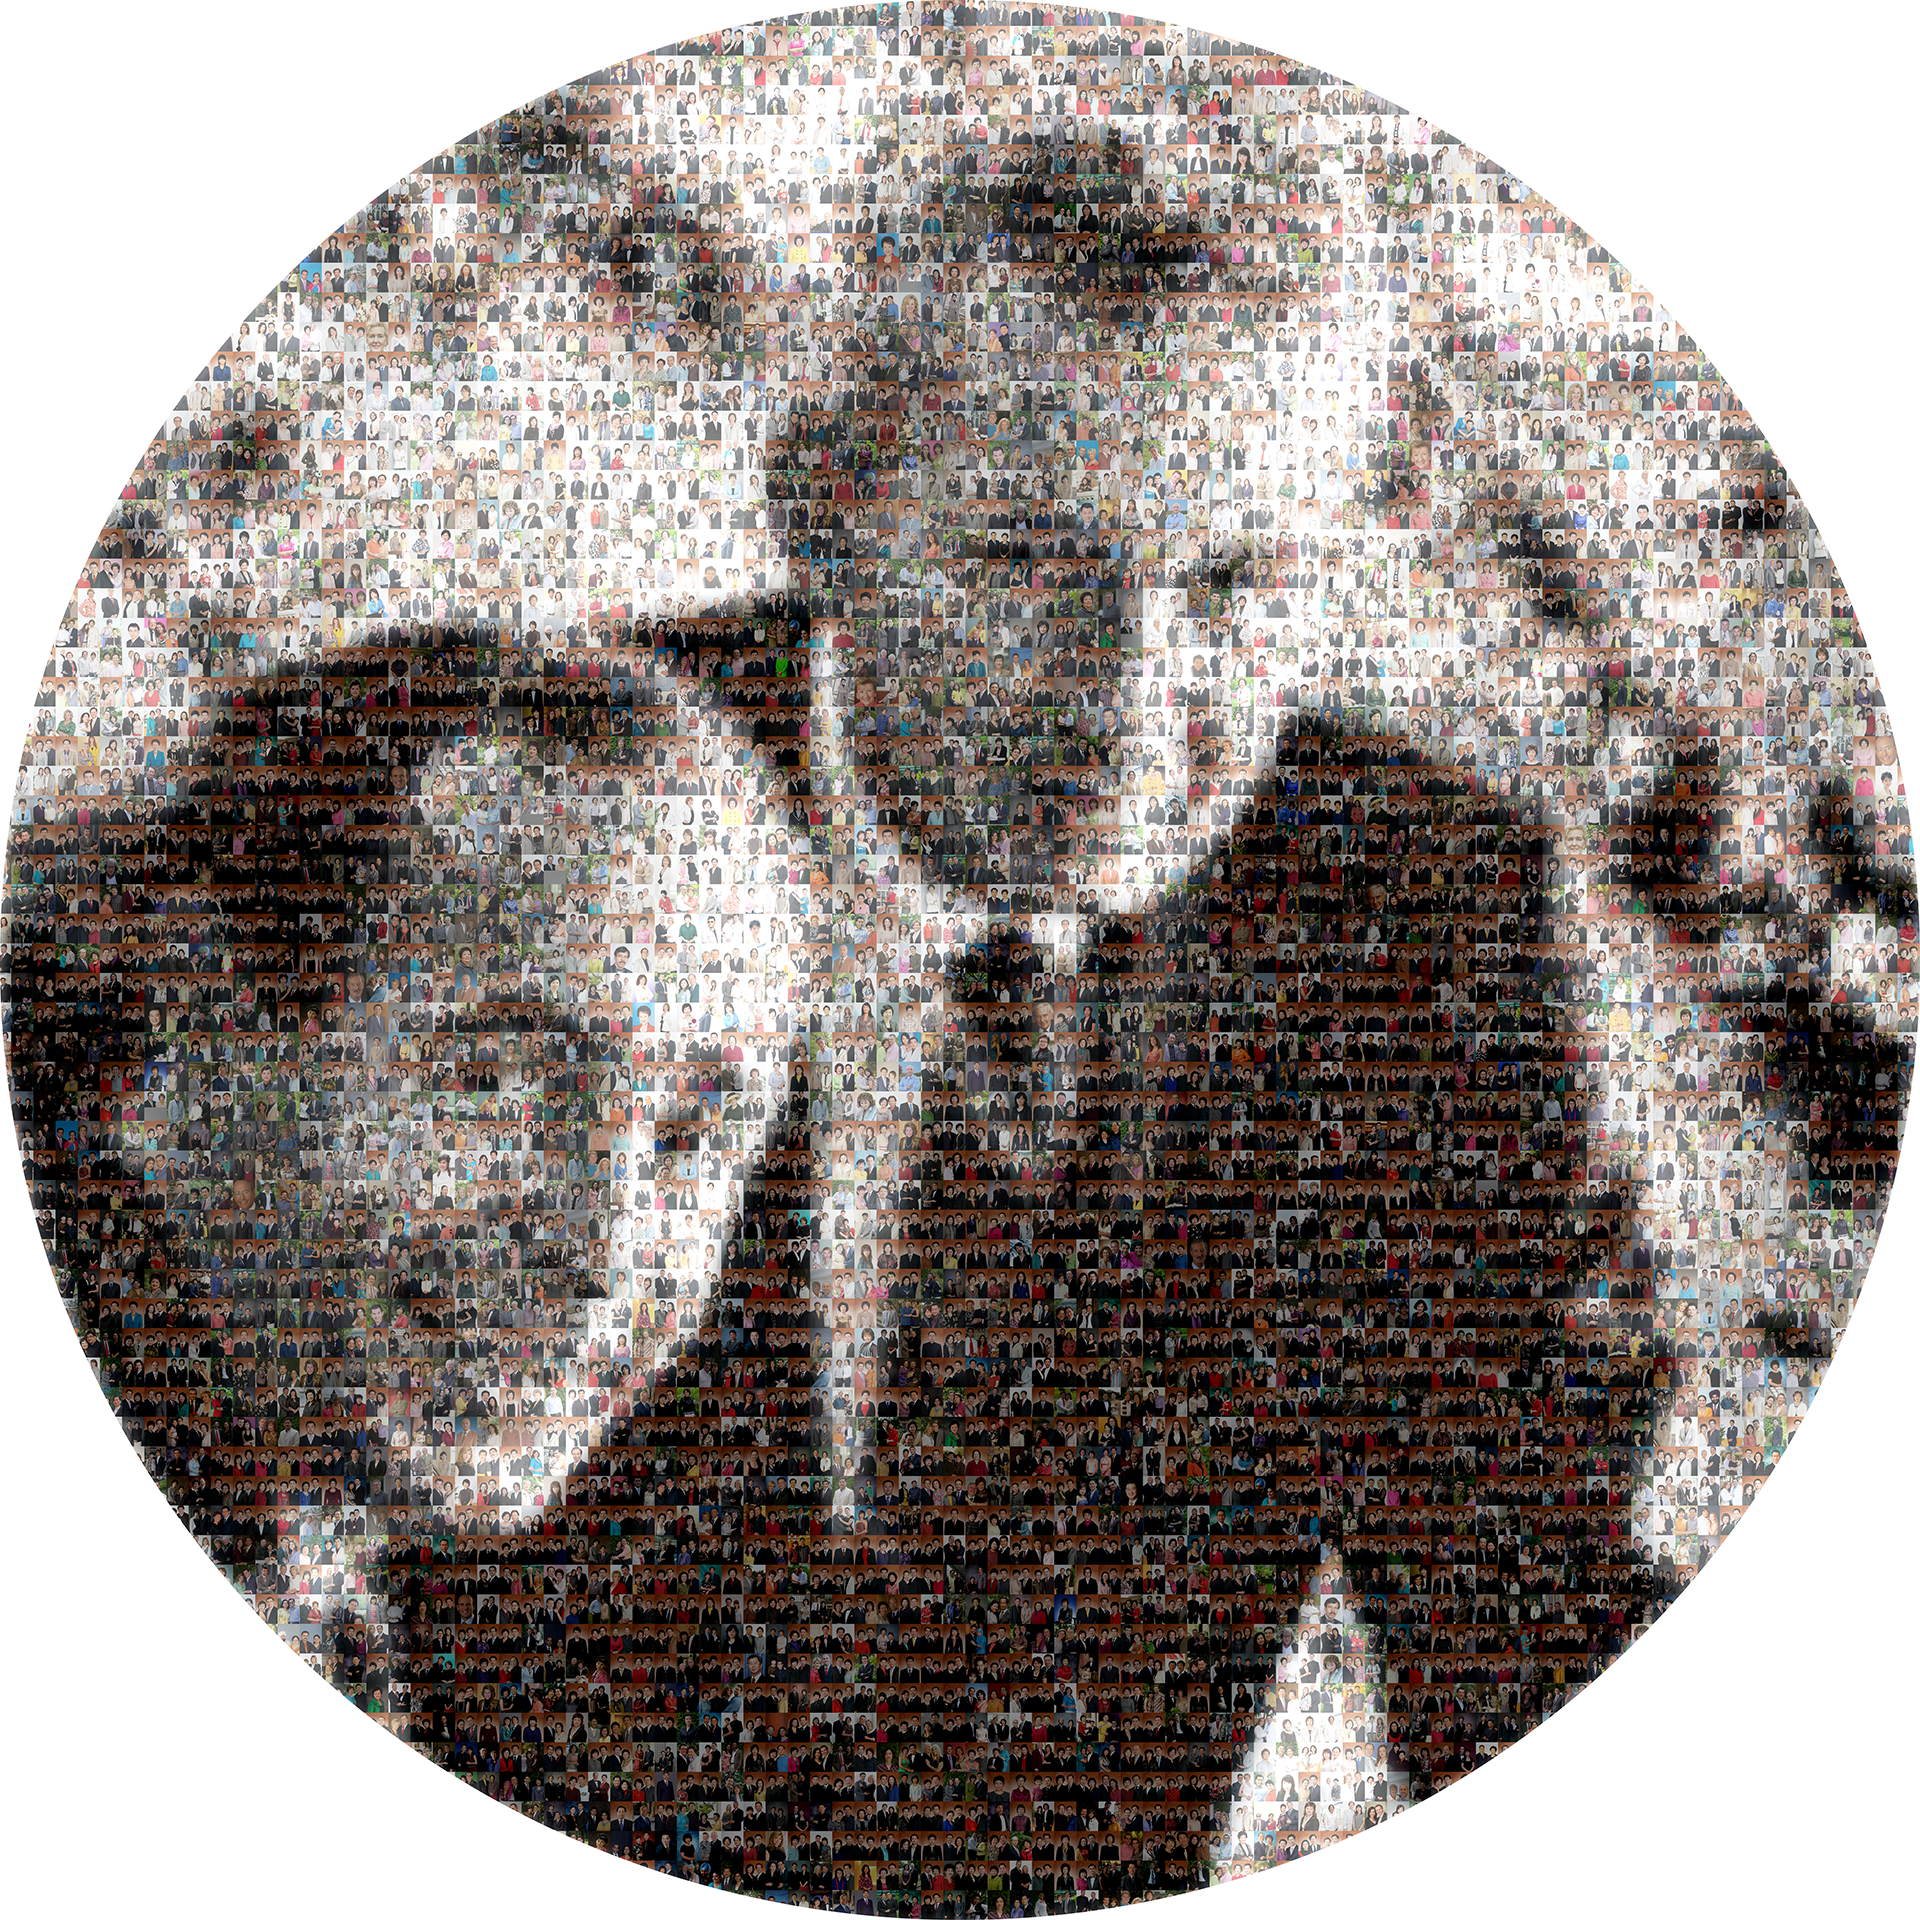 photo mosaic created using 1940 corporate worker selected photos